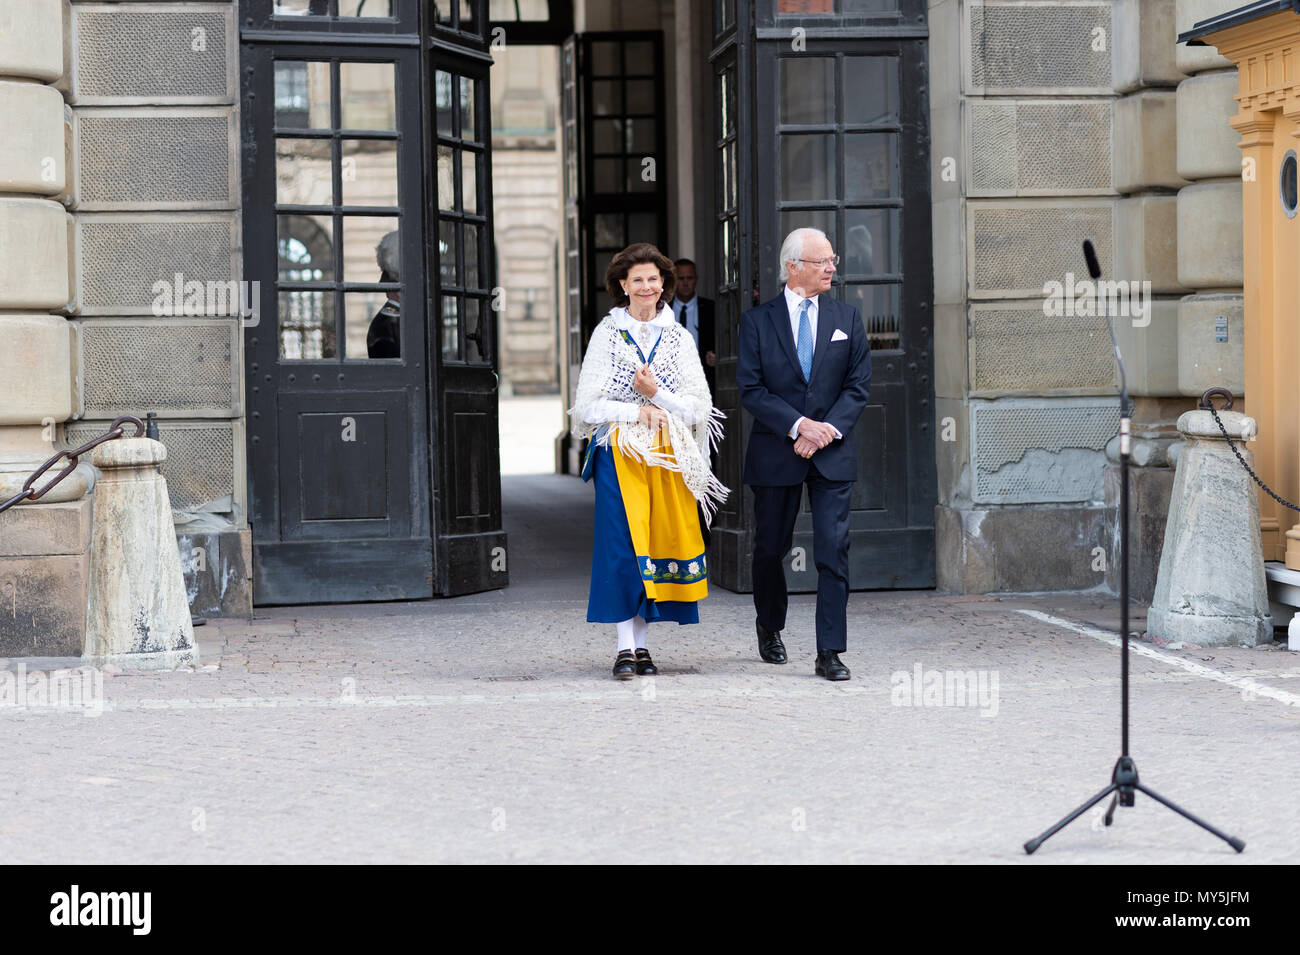 Stockholm, Sweden, June 6, 2018. Swedish National Day is celebrated at the Royal Palace with 'Open Castle' - a full day of free entrance to the Castle's museums, exhibitions and activities. The royal couple, King Carl XVI Gustaf and Queen Silvia, opens the western gate of the castle from the outer courtyard. Credit: Barbro Bergfeldt/Alamy Live News - Stock Image